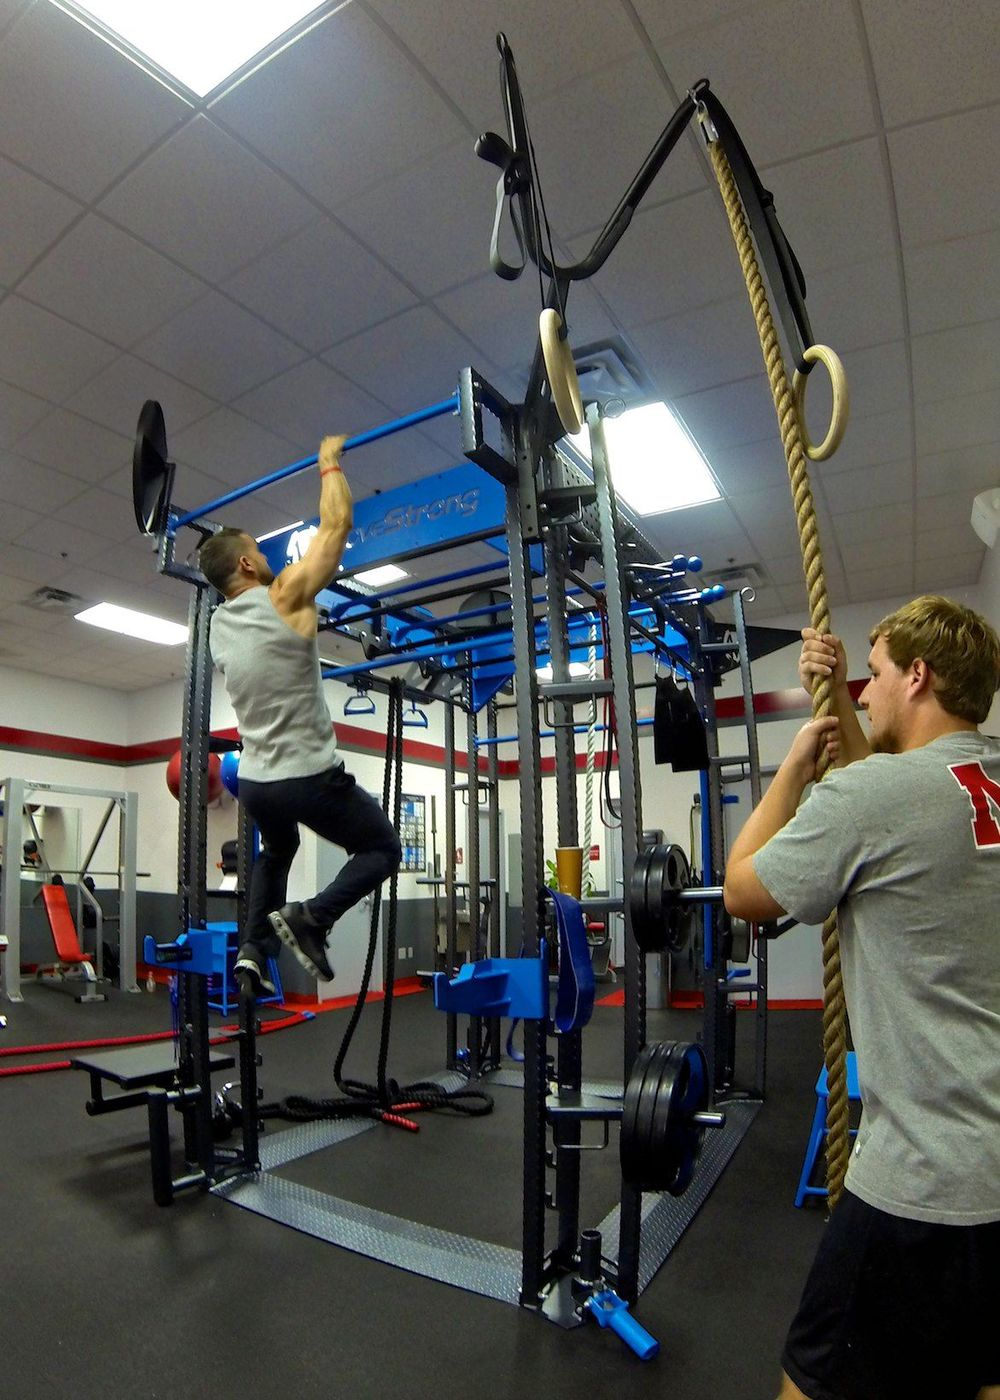 Snap Fitness-Functional training equipment